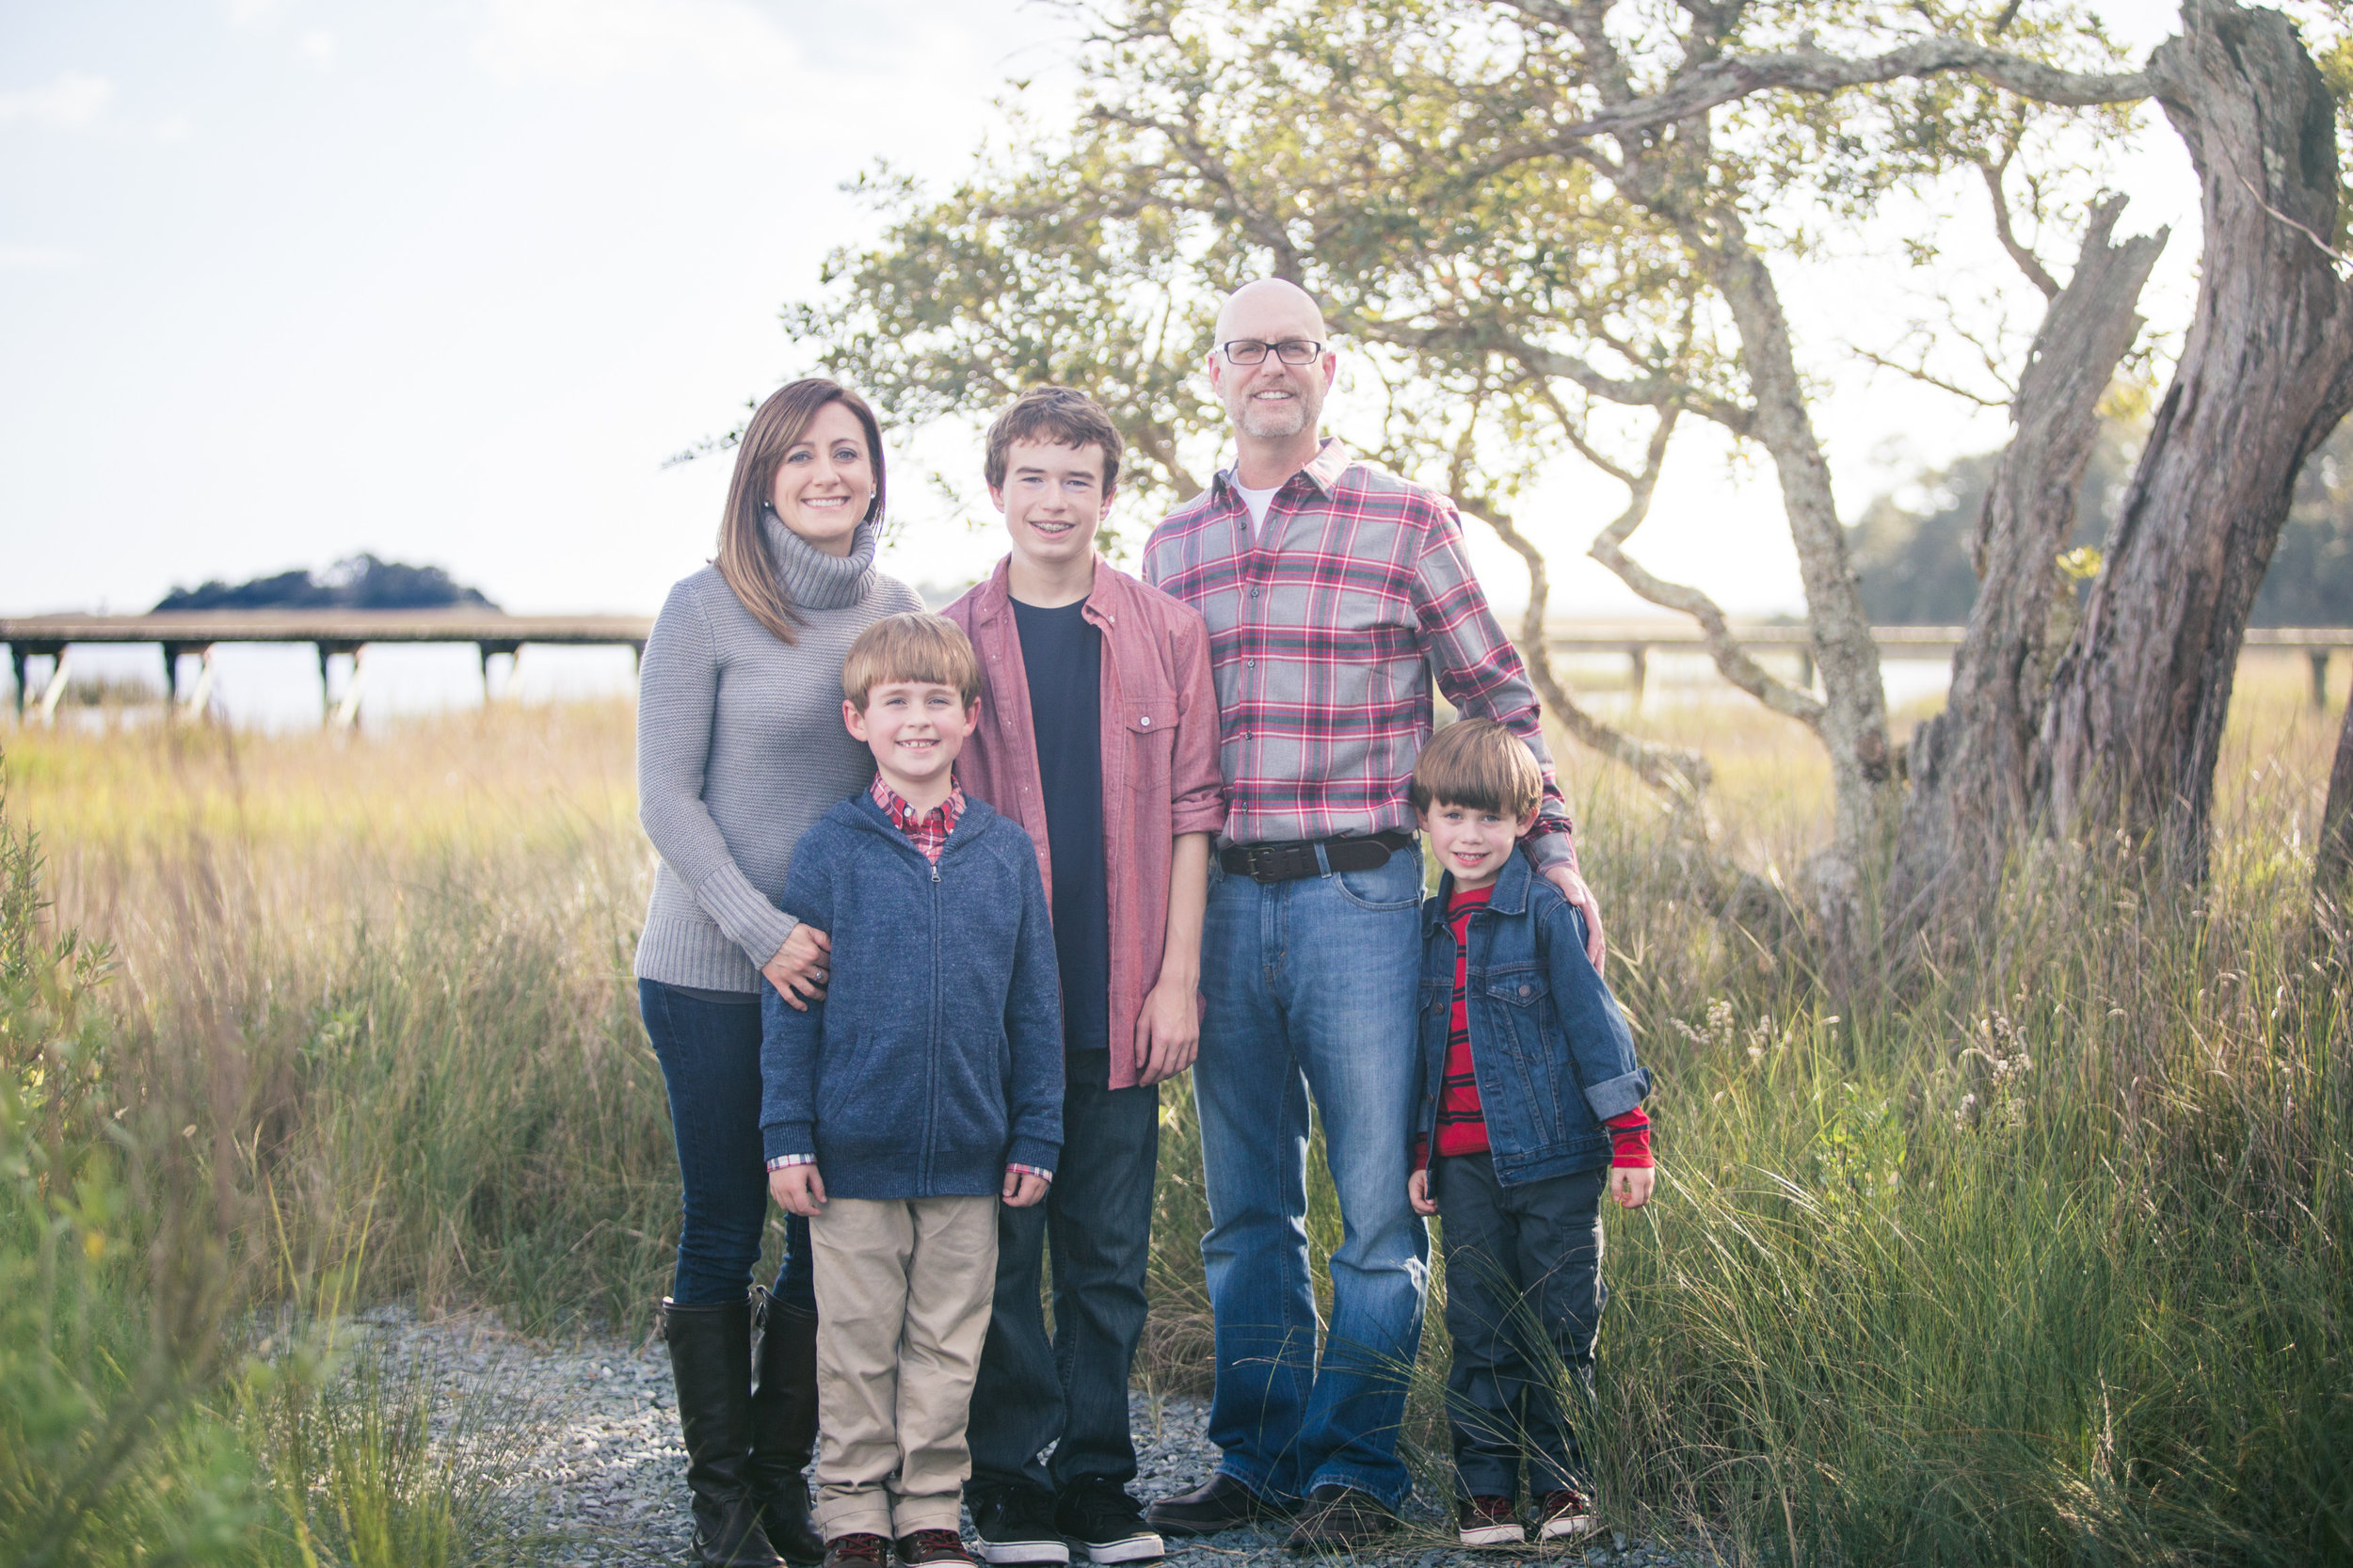 Woodfill Family-High Res for Print-0028.jpg